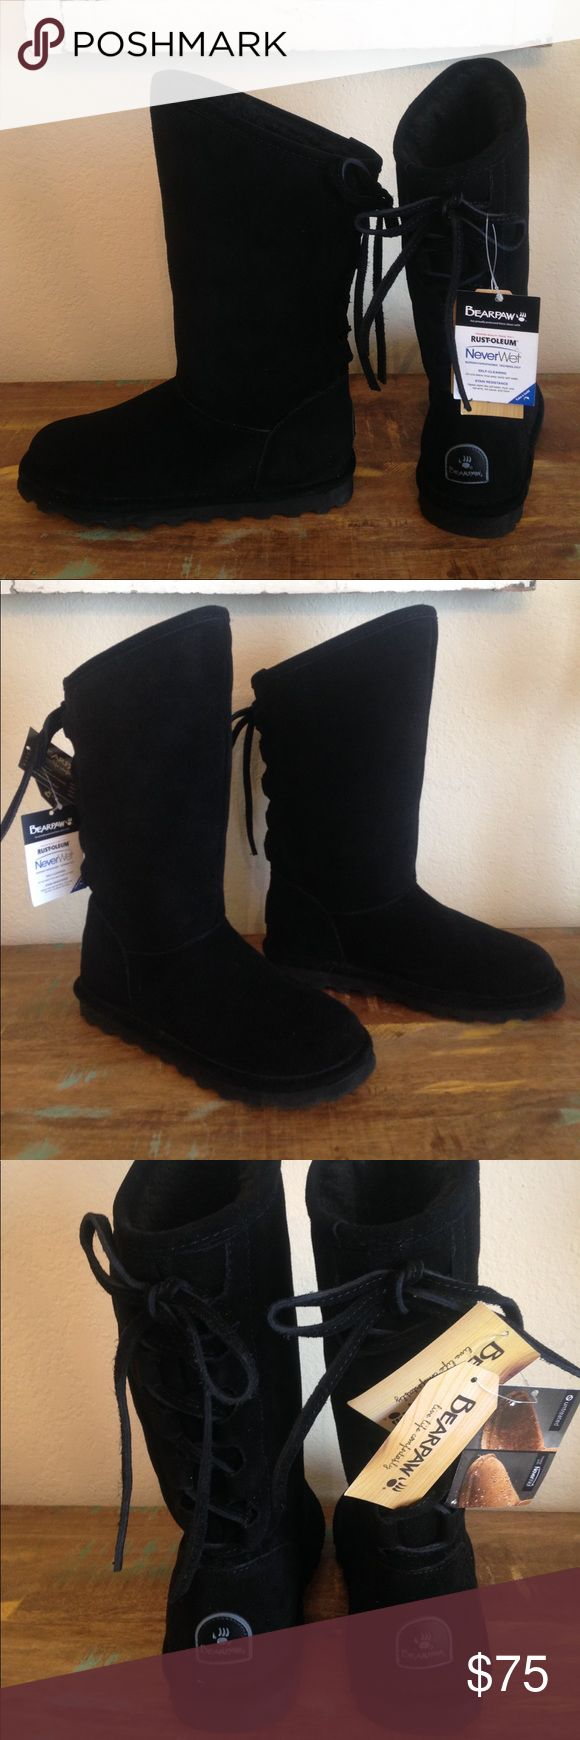 NEW wITH TAGS BLACK BEAR PAW BOOTS SZ 7 NEW WITH TAGS BearPaw Shoes Winter & Rain Boots